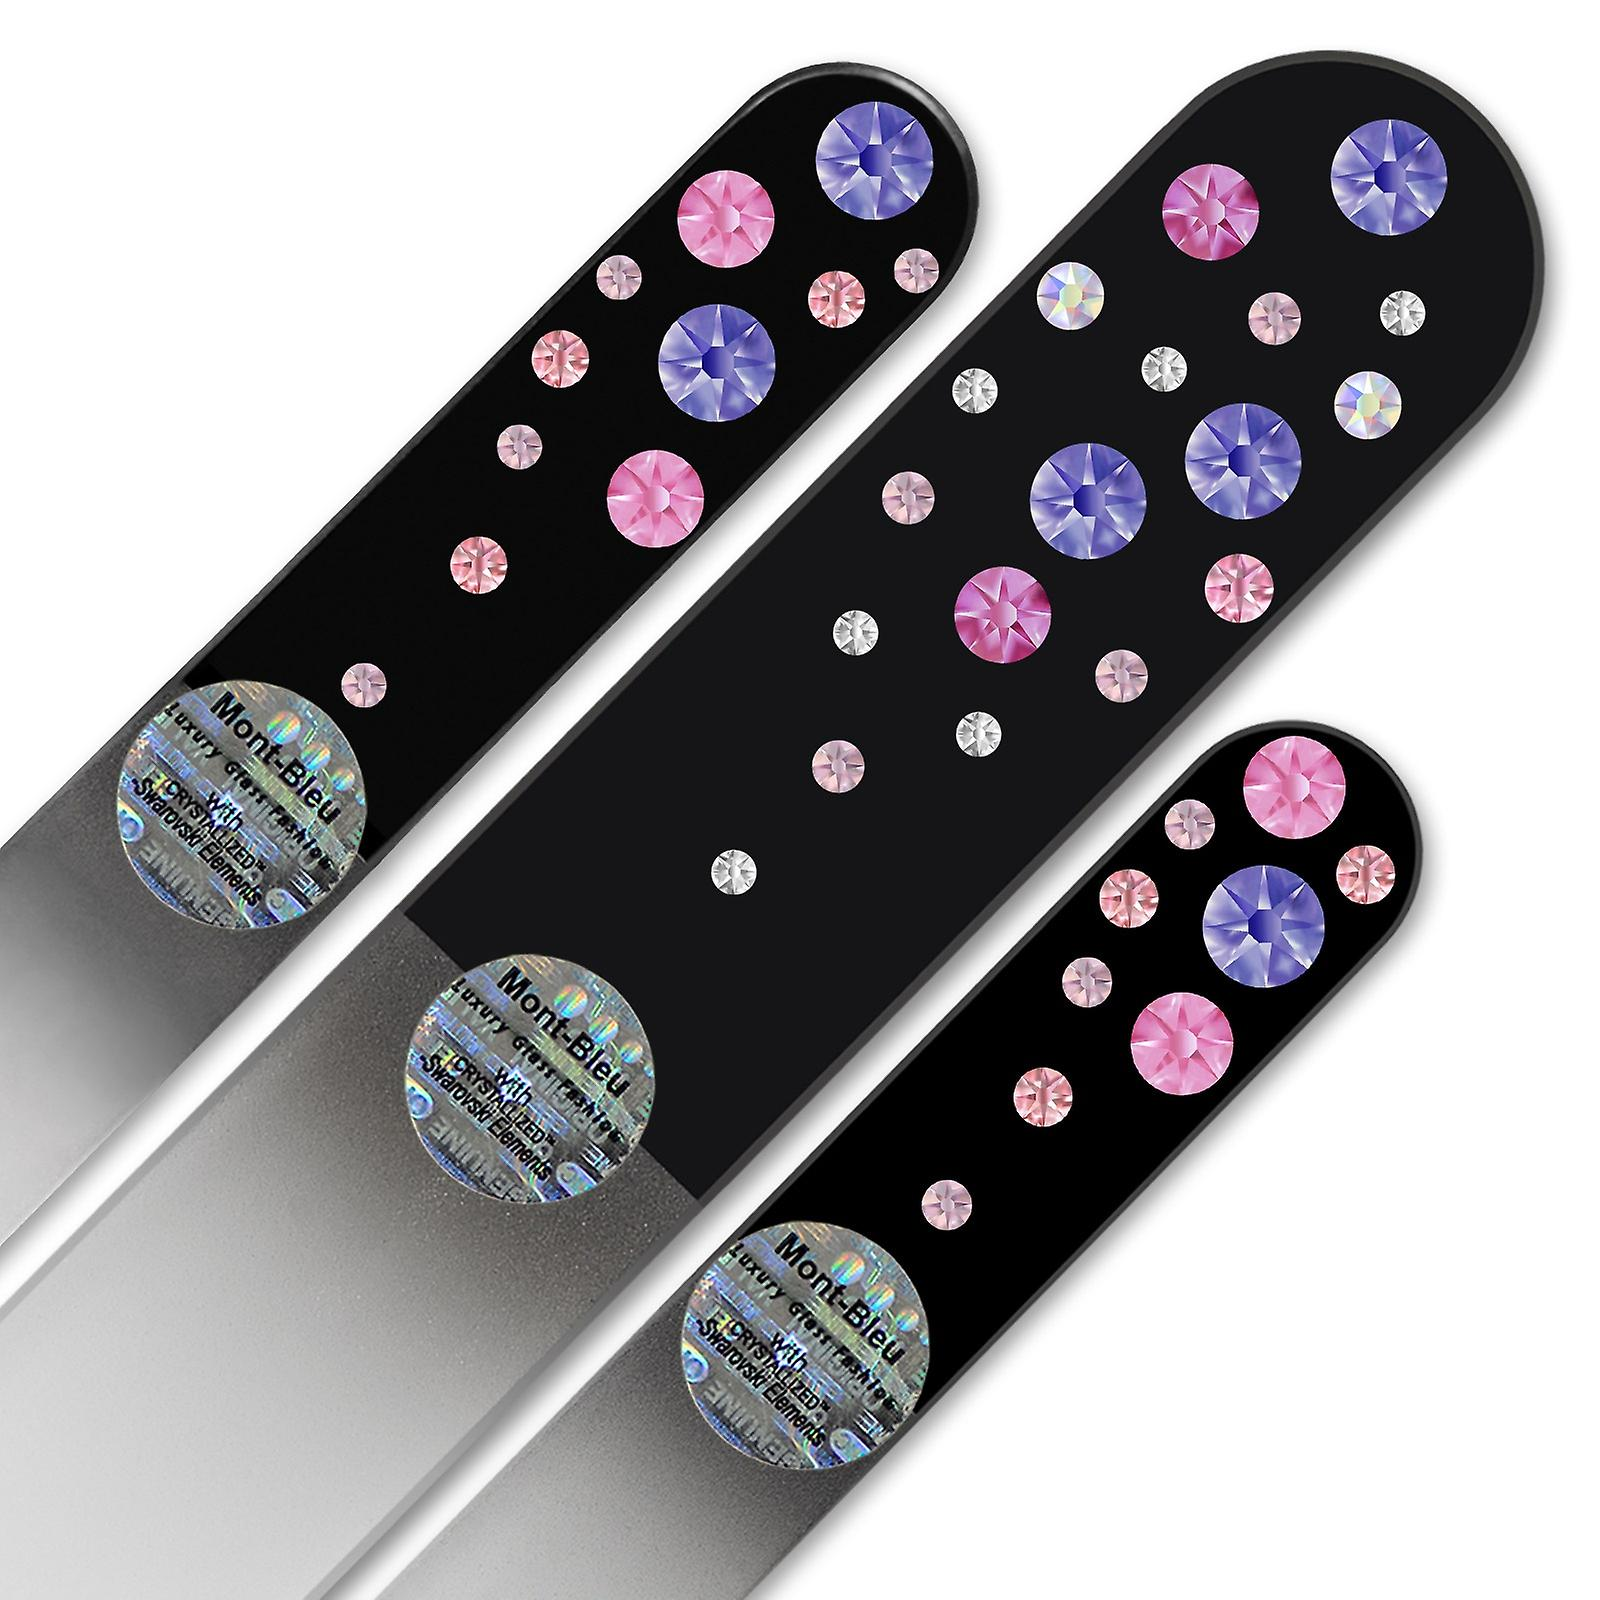 Set of 3 Black Crystal Nail Files with crystals WB-BMS